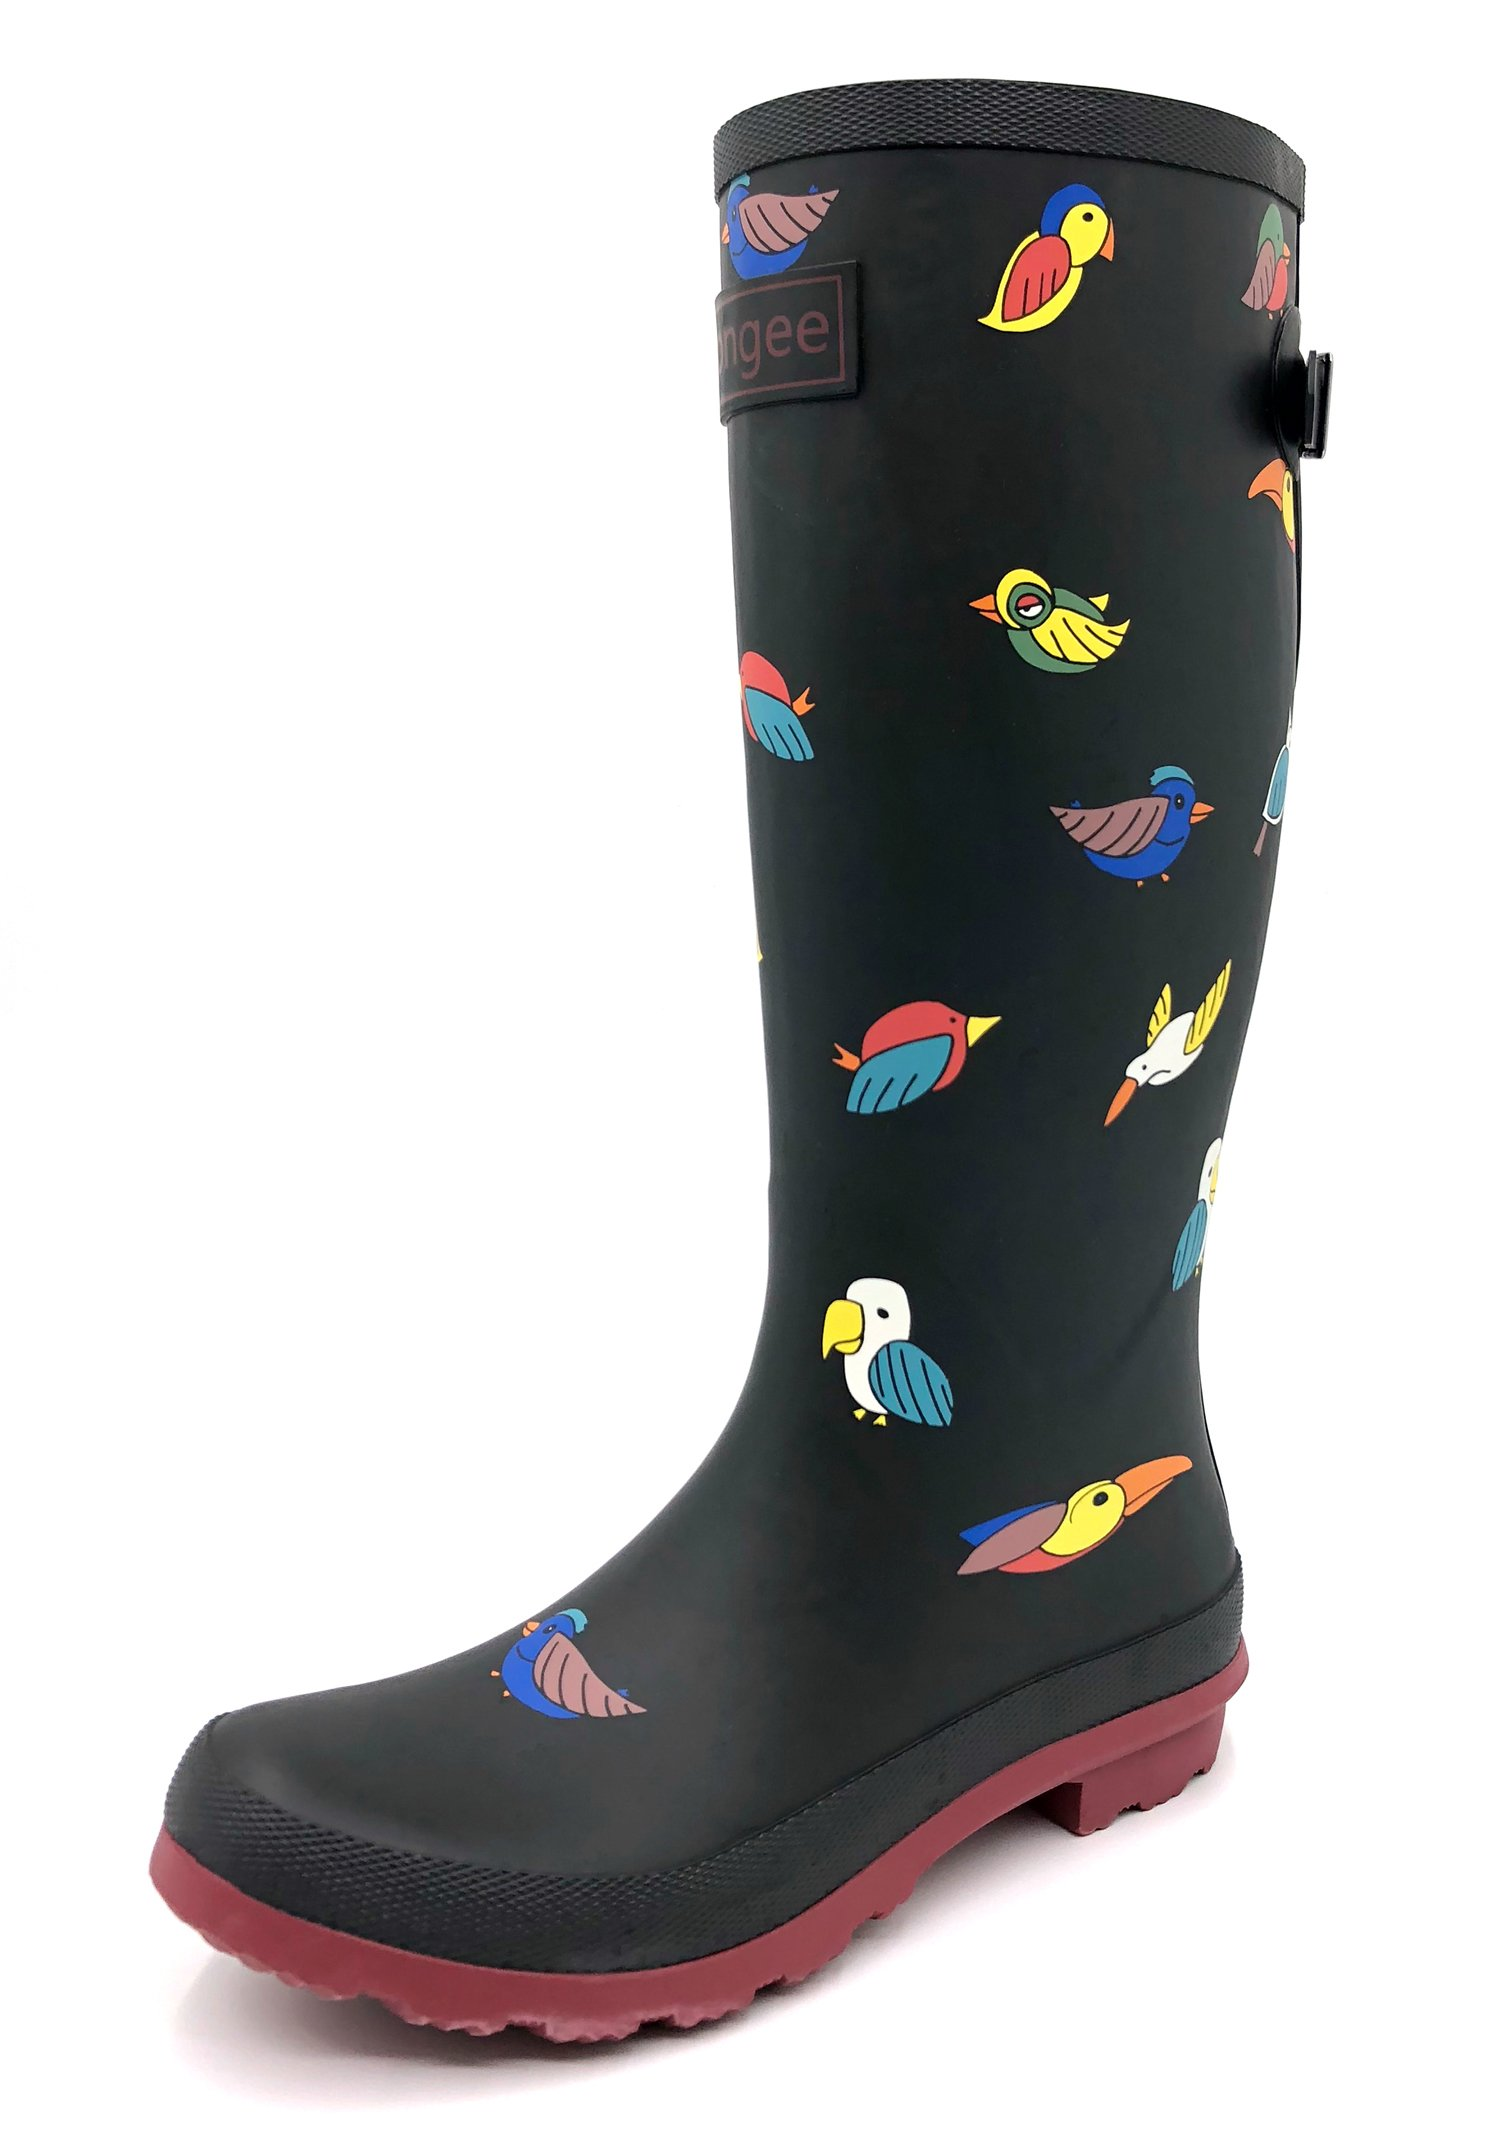 Rongee Bird Printed Tall Rubber Rain Boots for Women with Adjustable Gusset and Oxford Bag Packed (8 B(M) US)